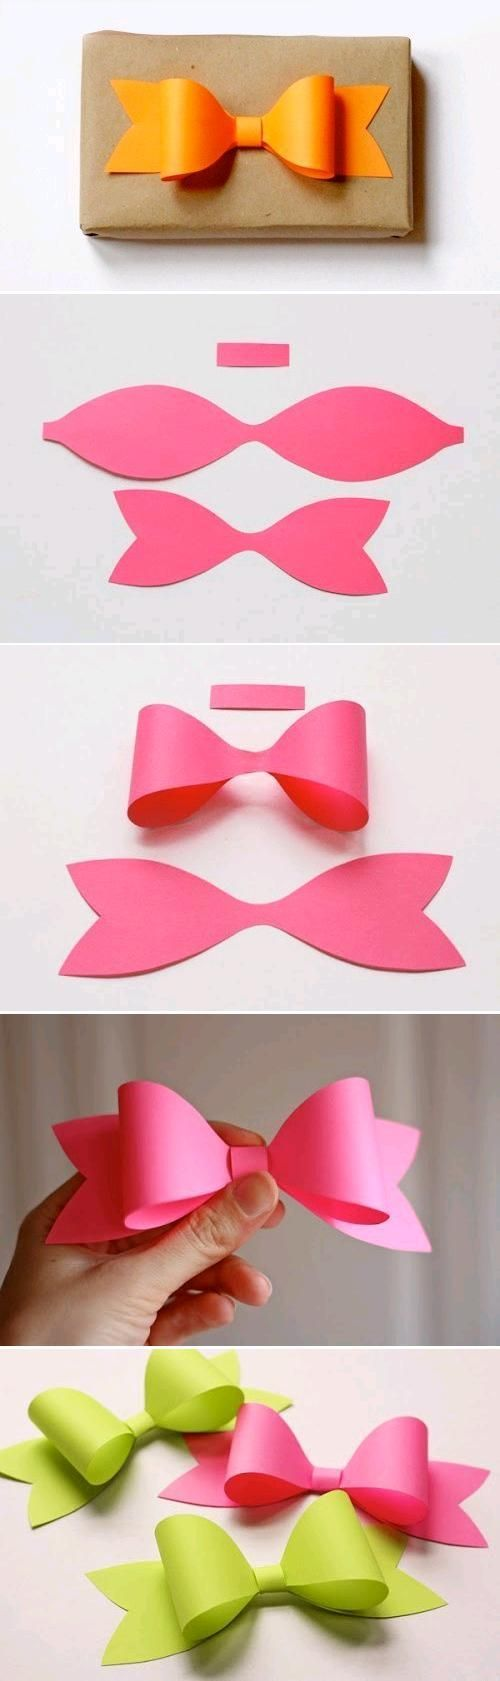 DIY Modular Gift Bow DIY Projects / UsefulDIY.com on imgfave